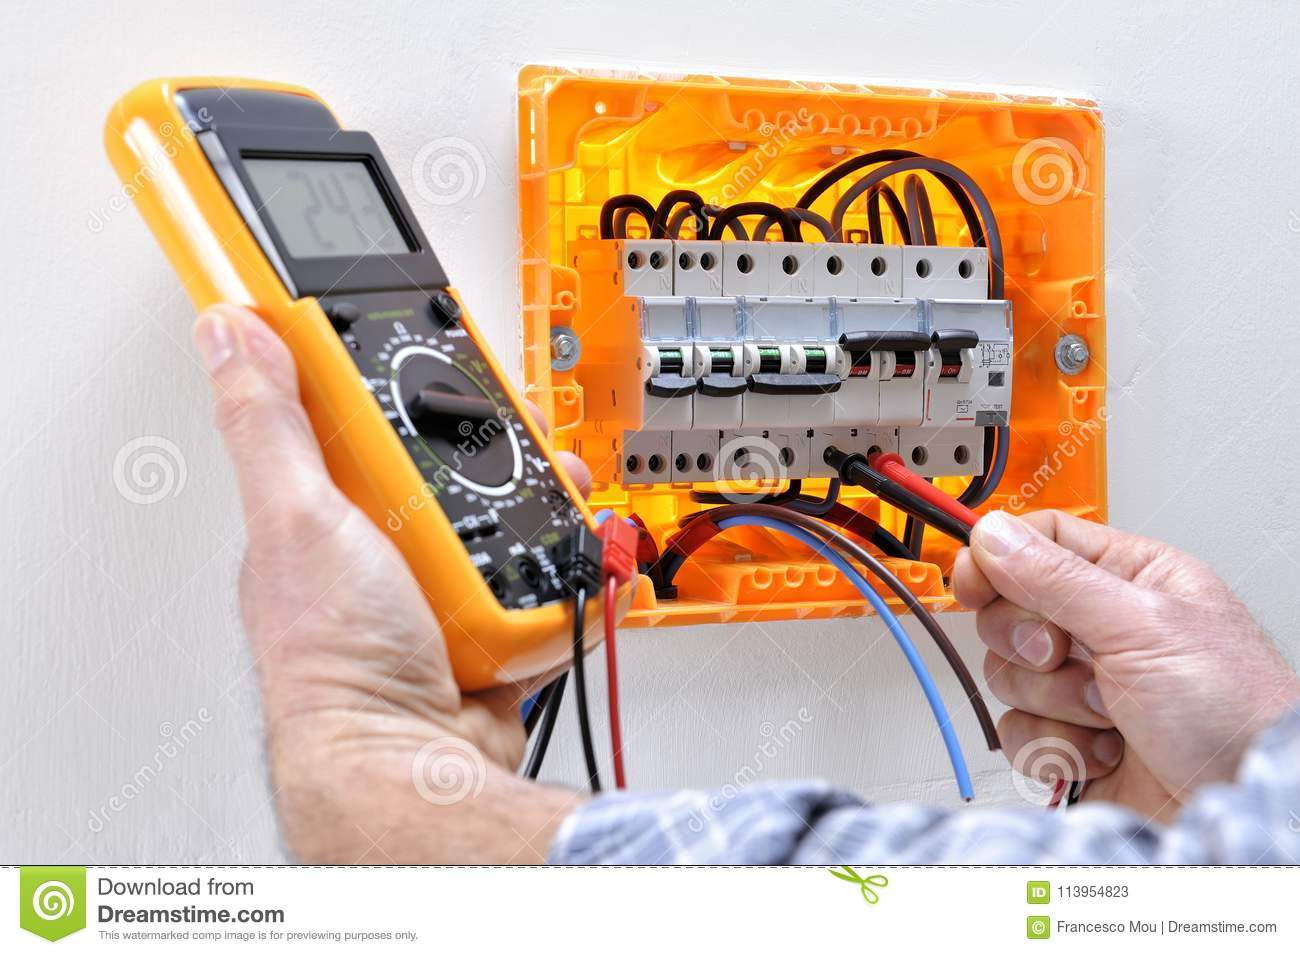 Royalty Free Stock Photo Download Electrician Technician At Work On A Residential Electric Panel